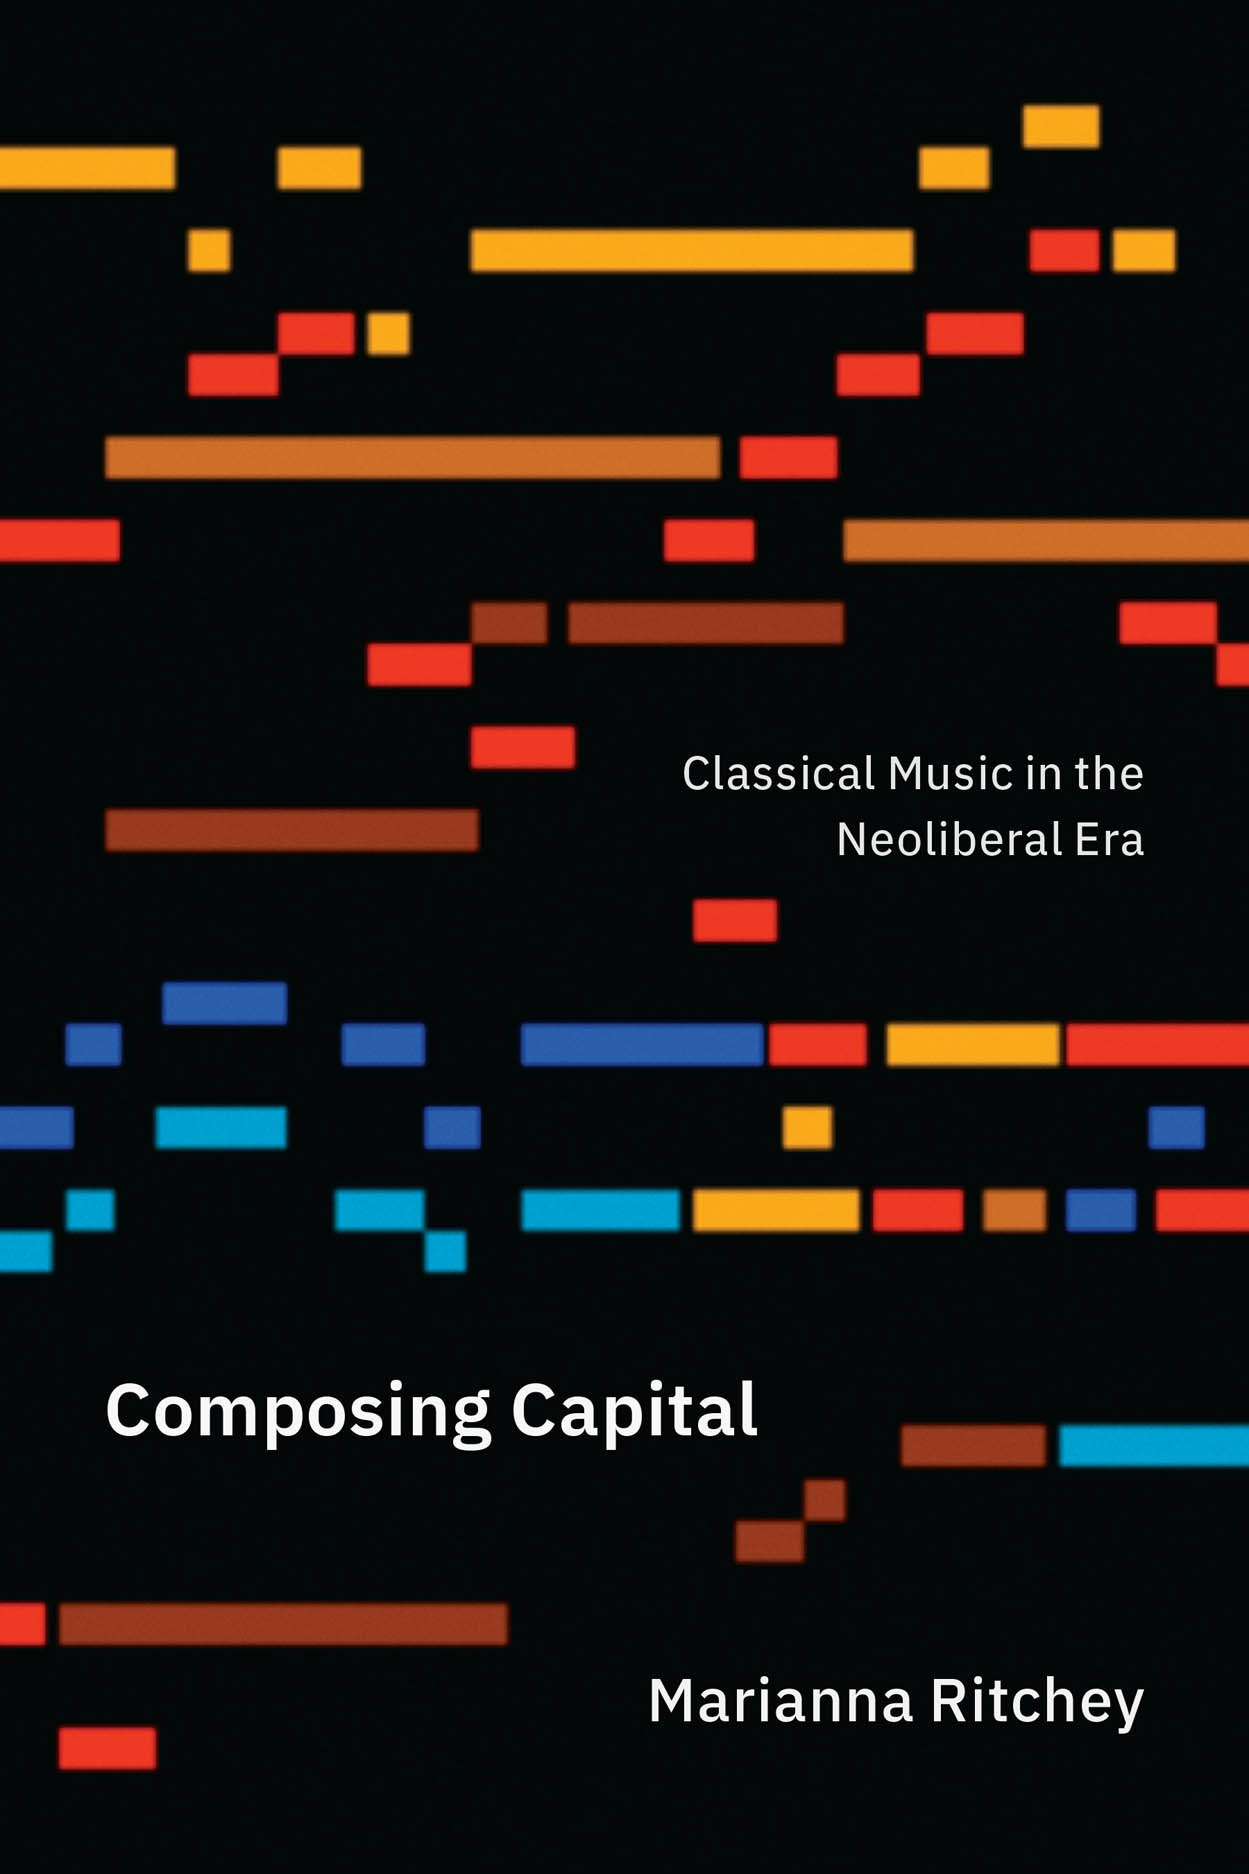 Composing Capital